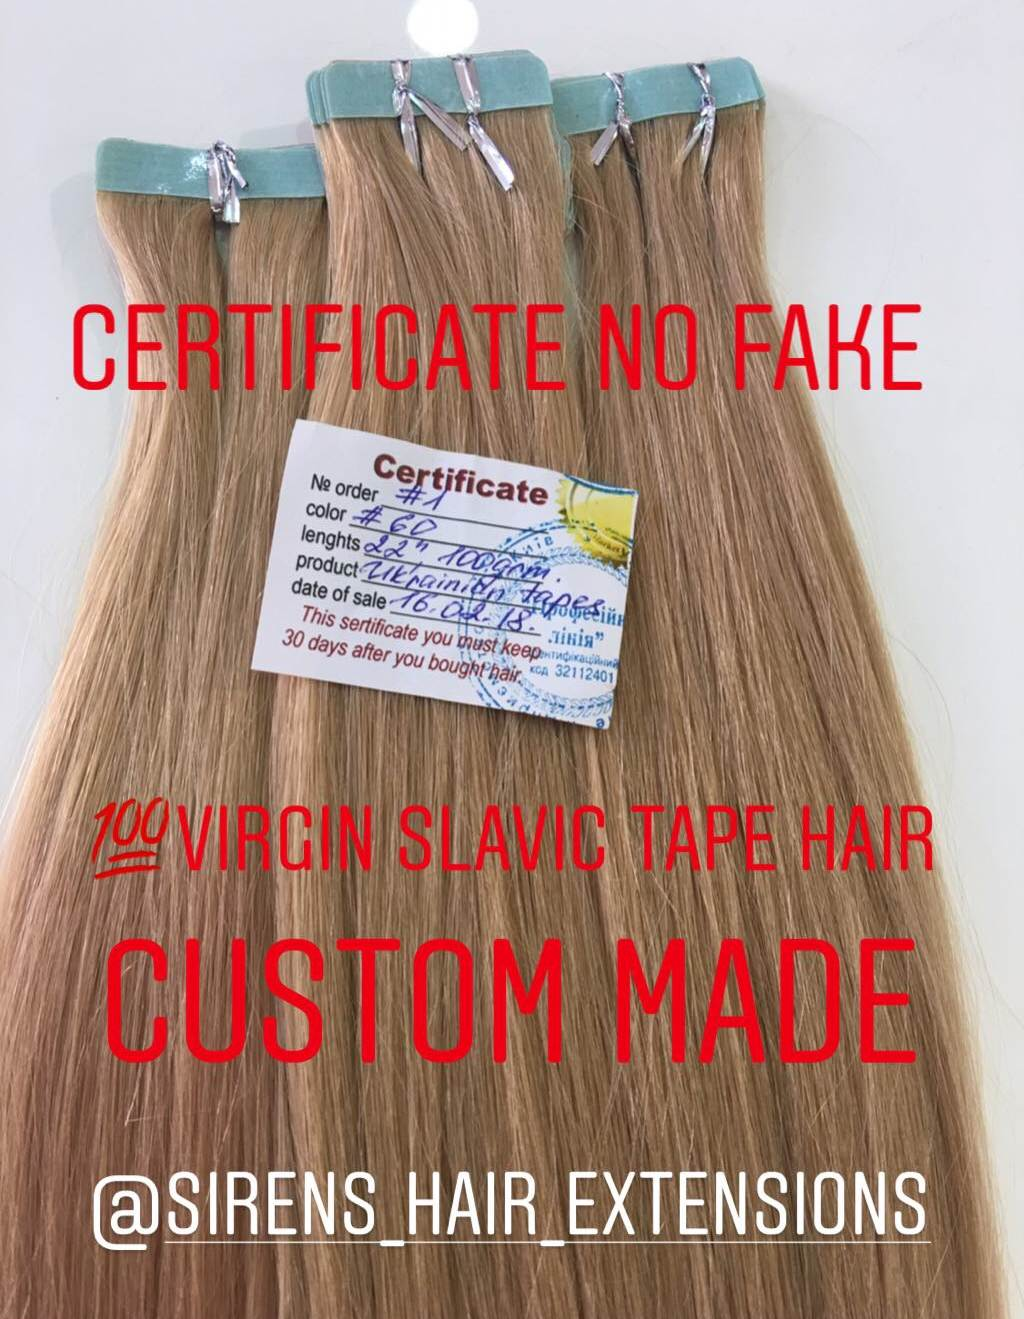 custom made slavic hair